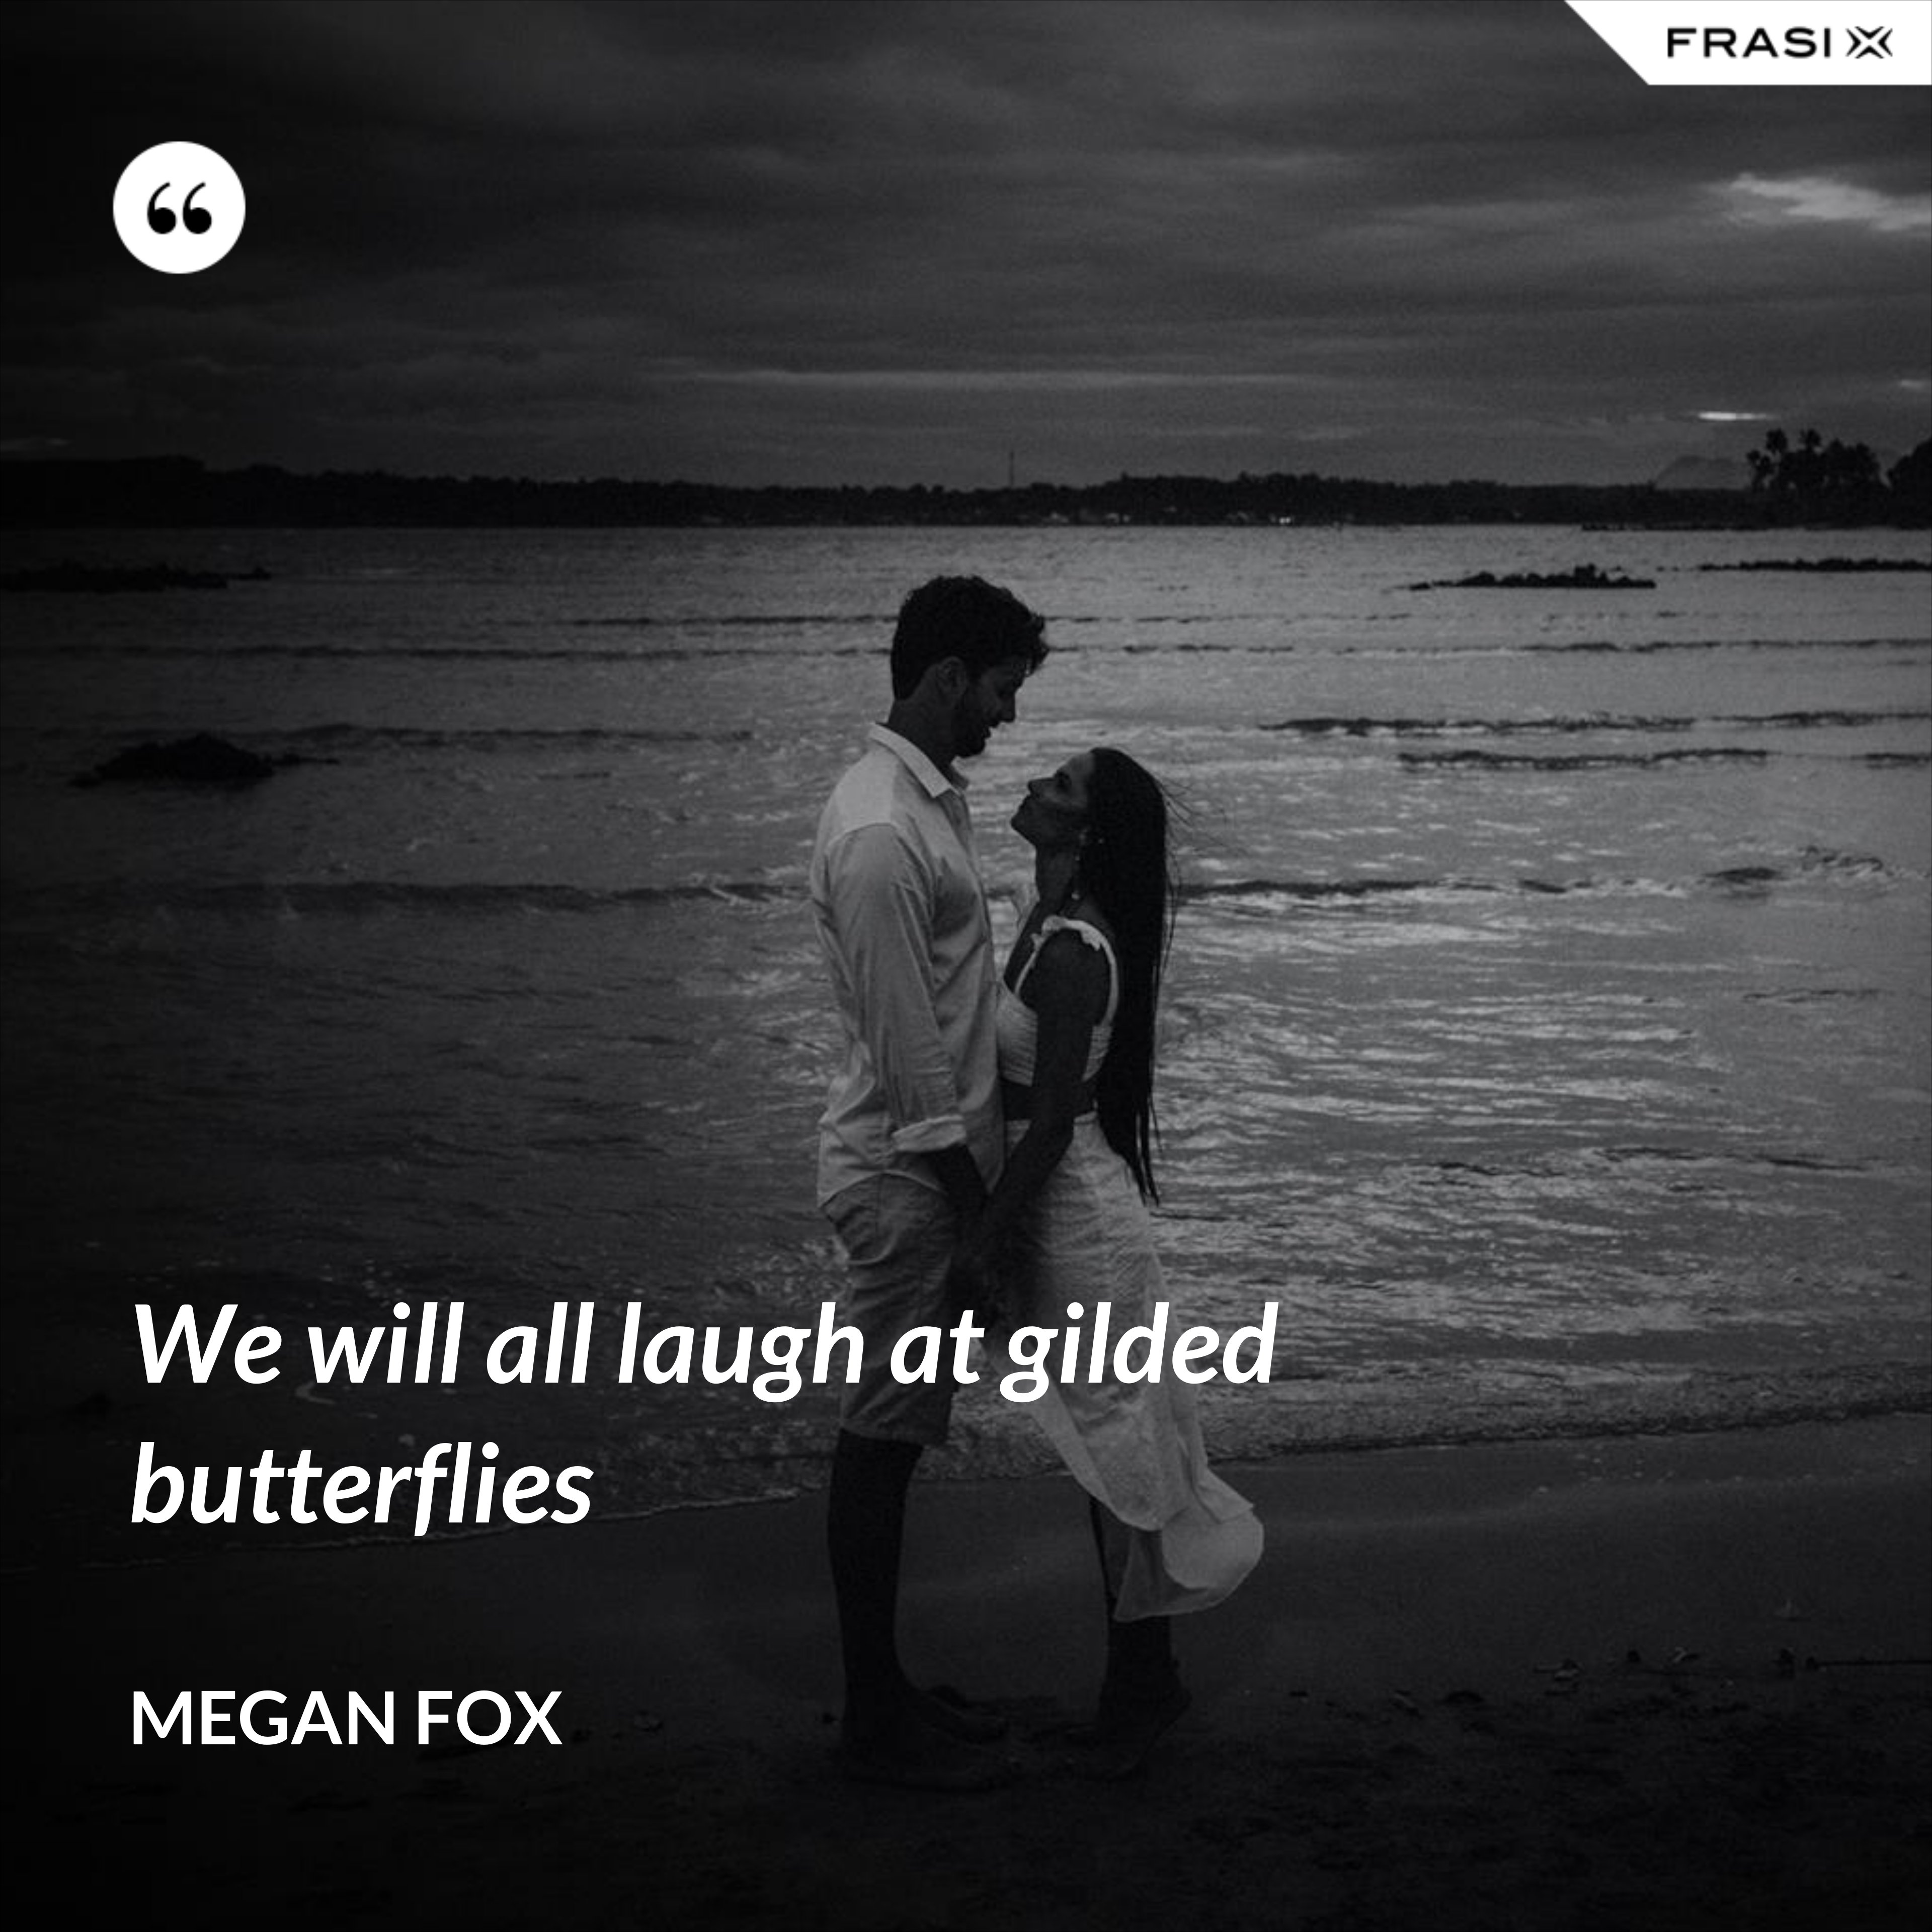 We will all laugh at gilded butterflies - Megan Fox